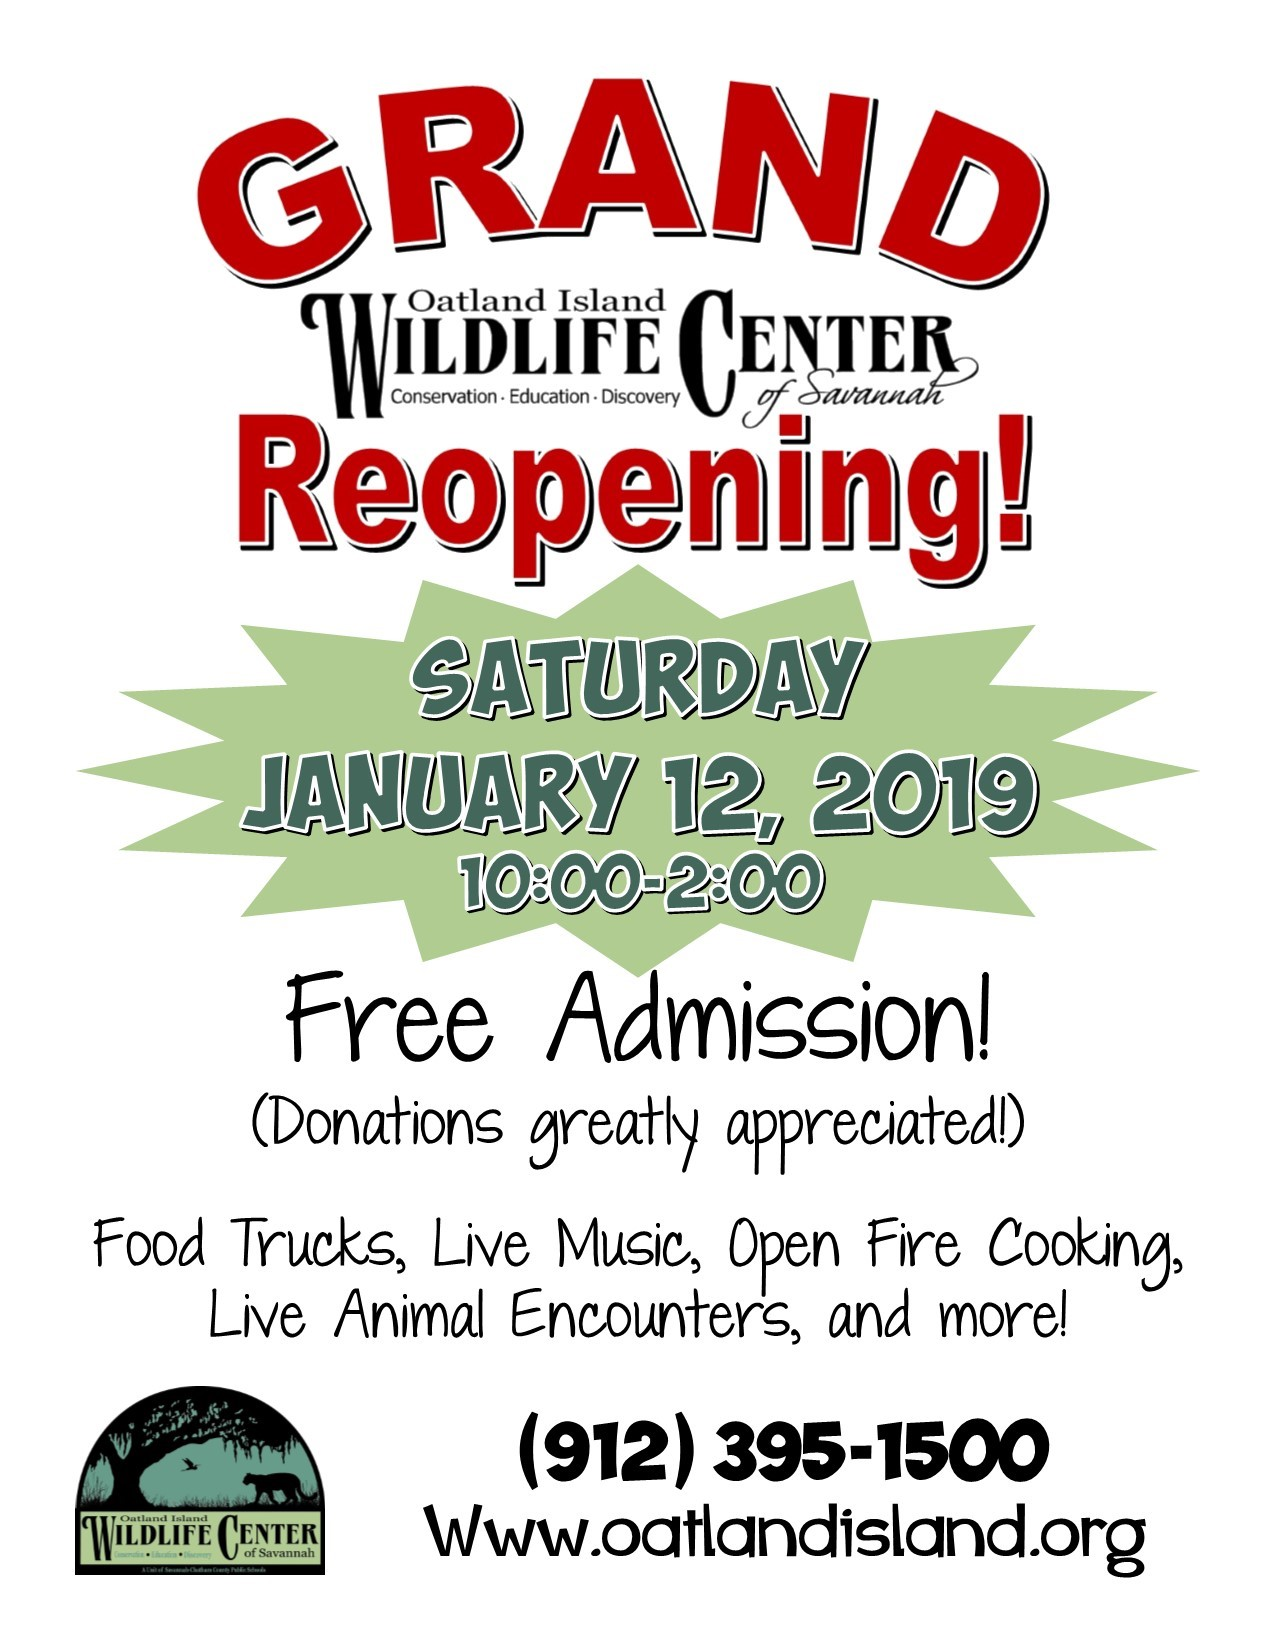 Oatland Island Wildlife Center is open 2019